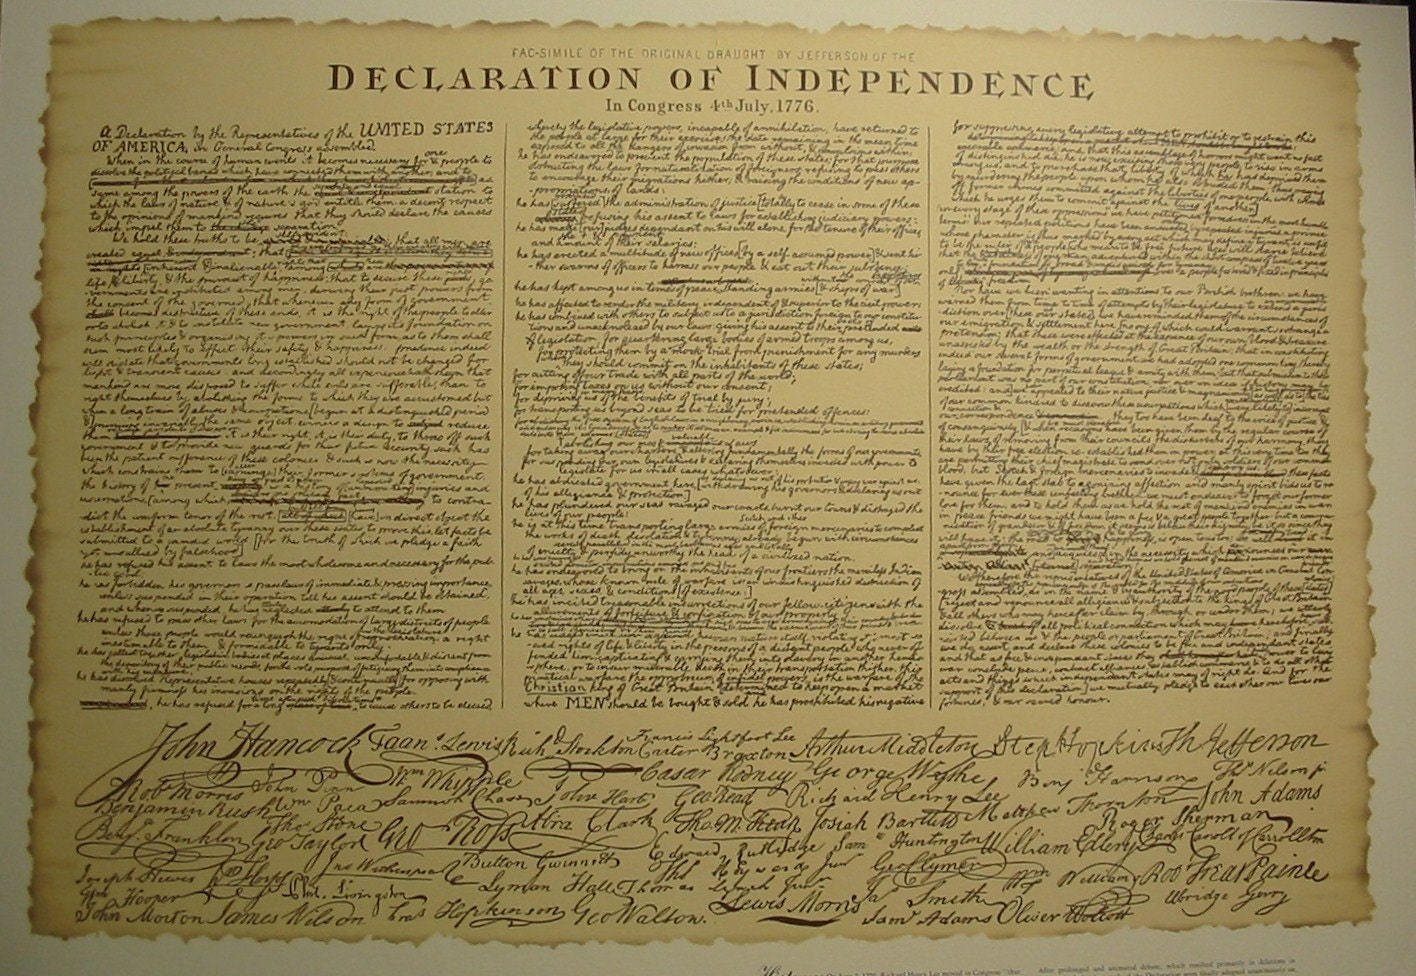 It's just a photo of Vibrant Printable Copy of the Declaration of Independence